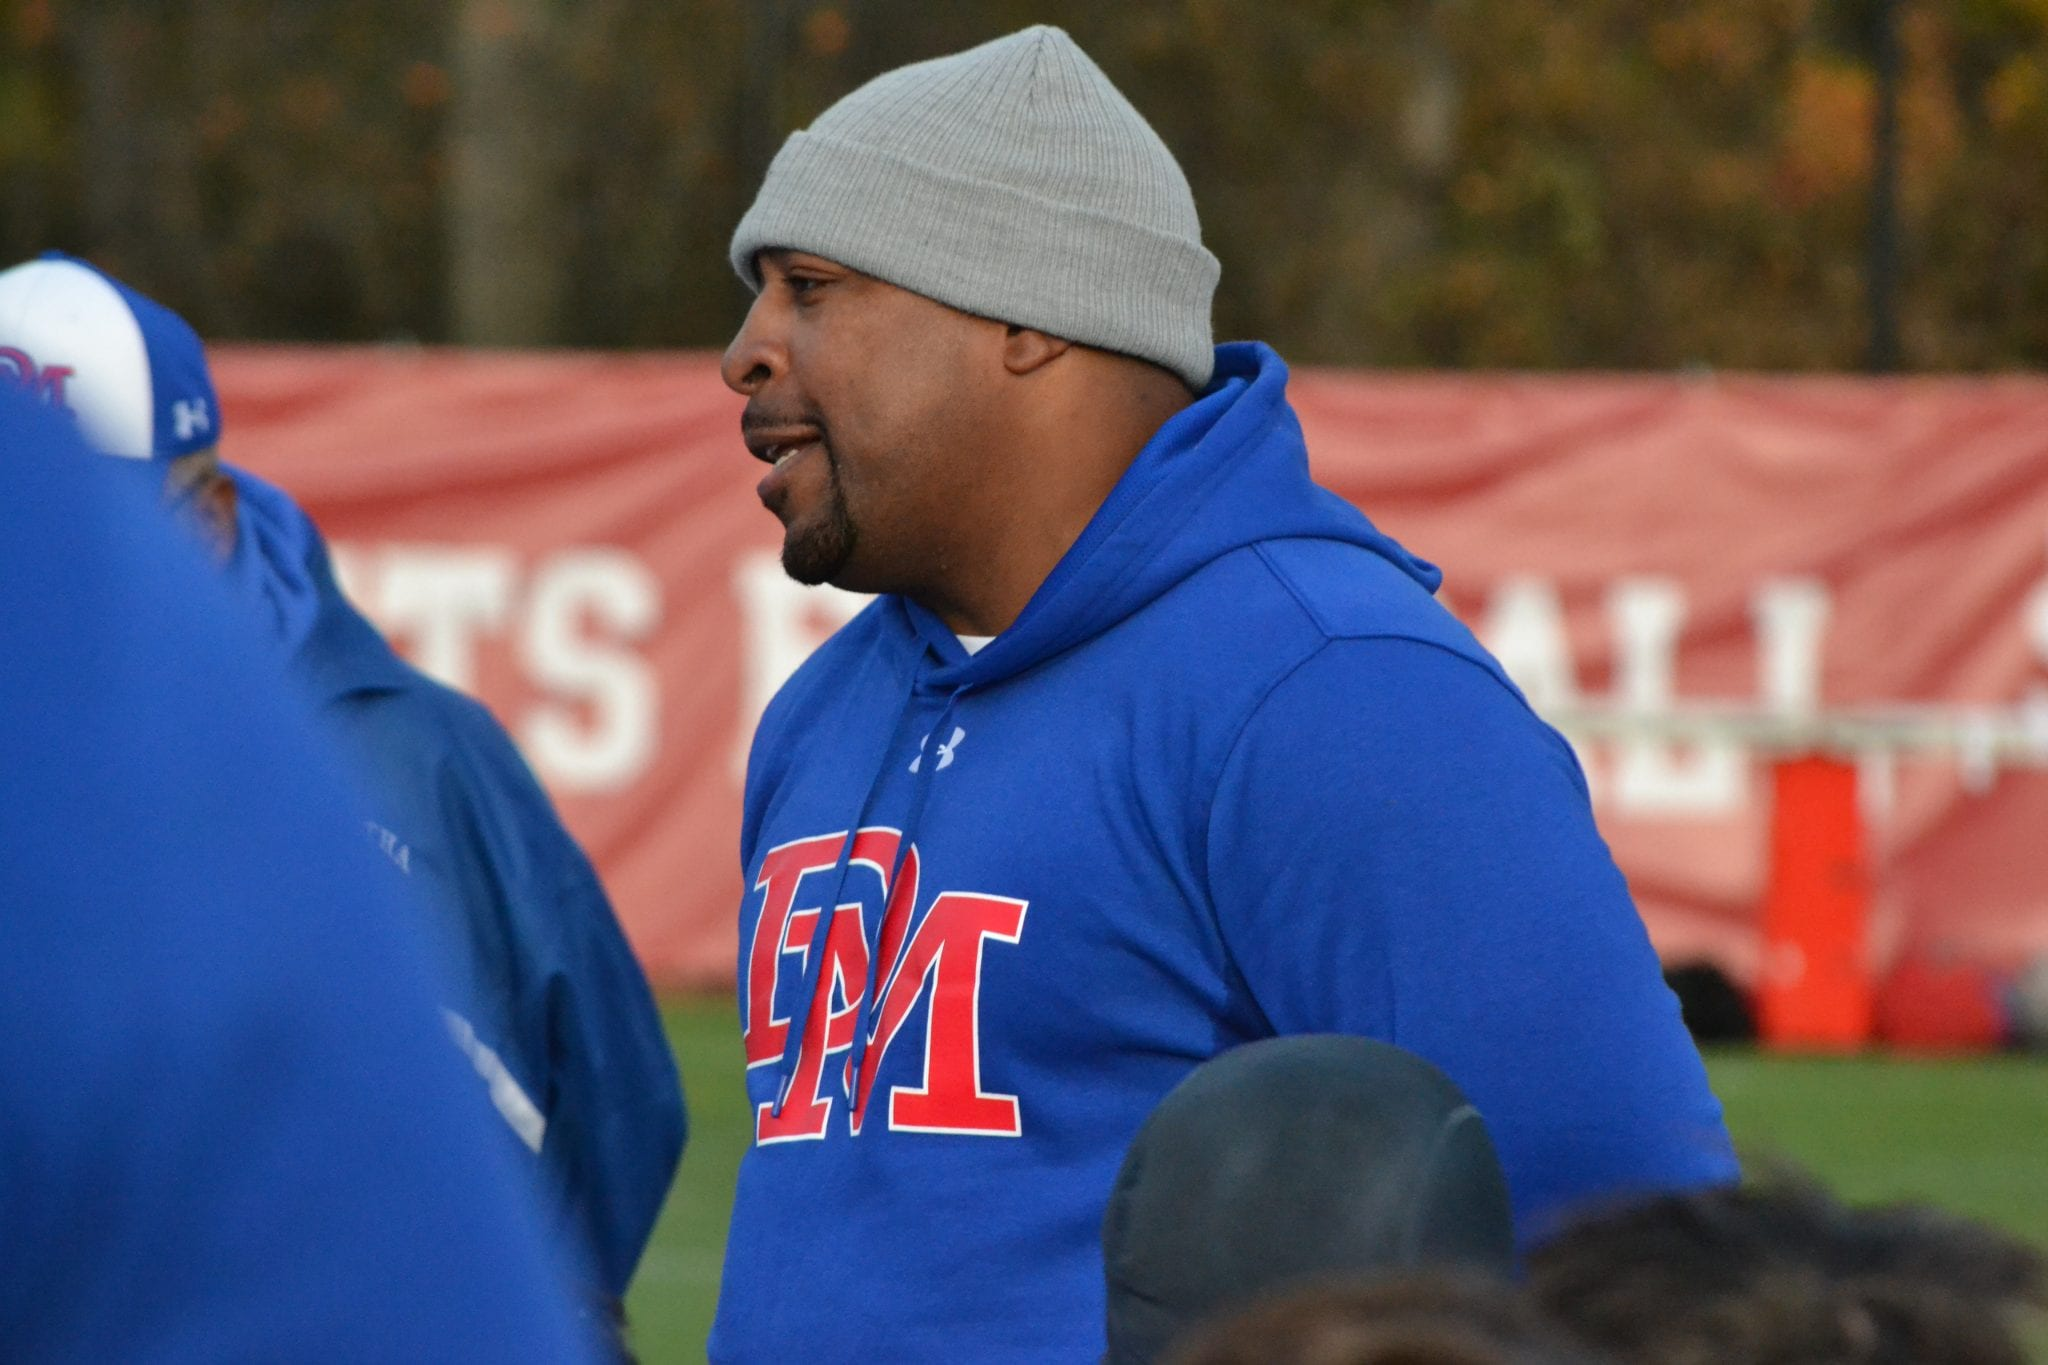 Dematha head coach Elijah Brooks. -- ALAN SAUNDERS